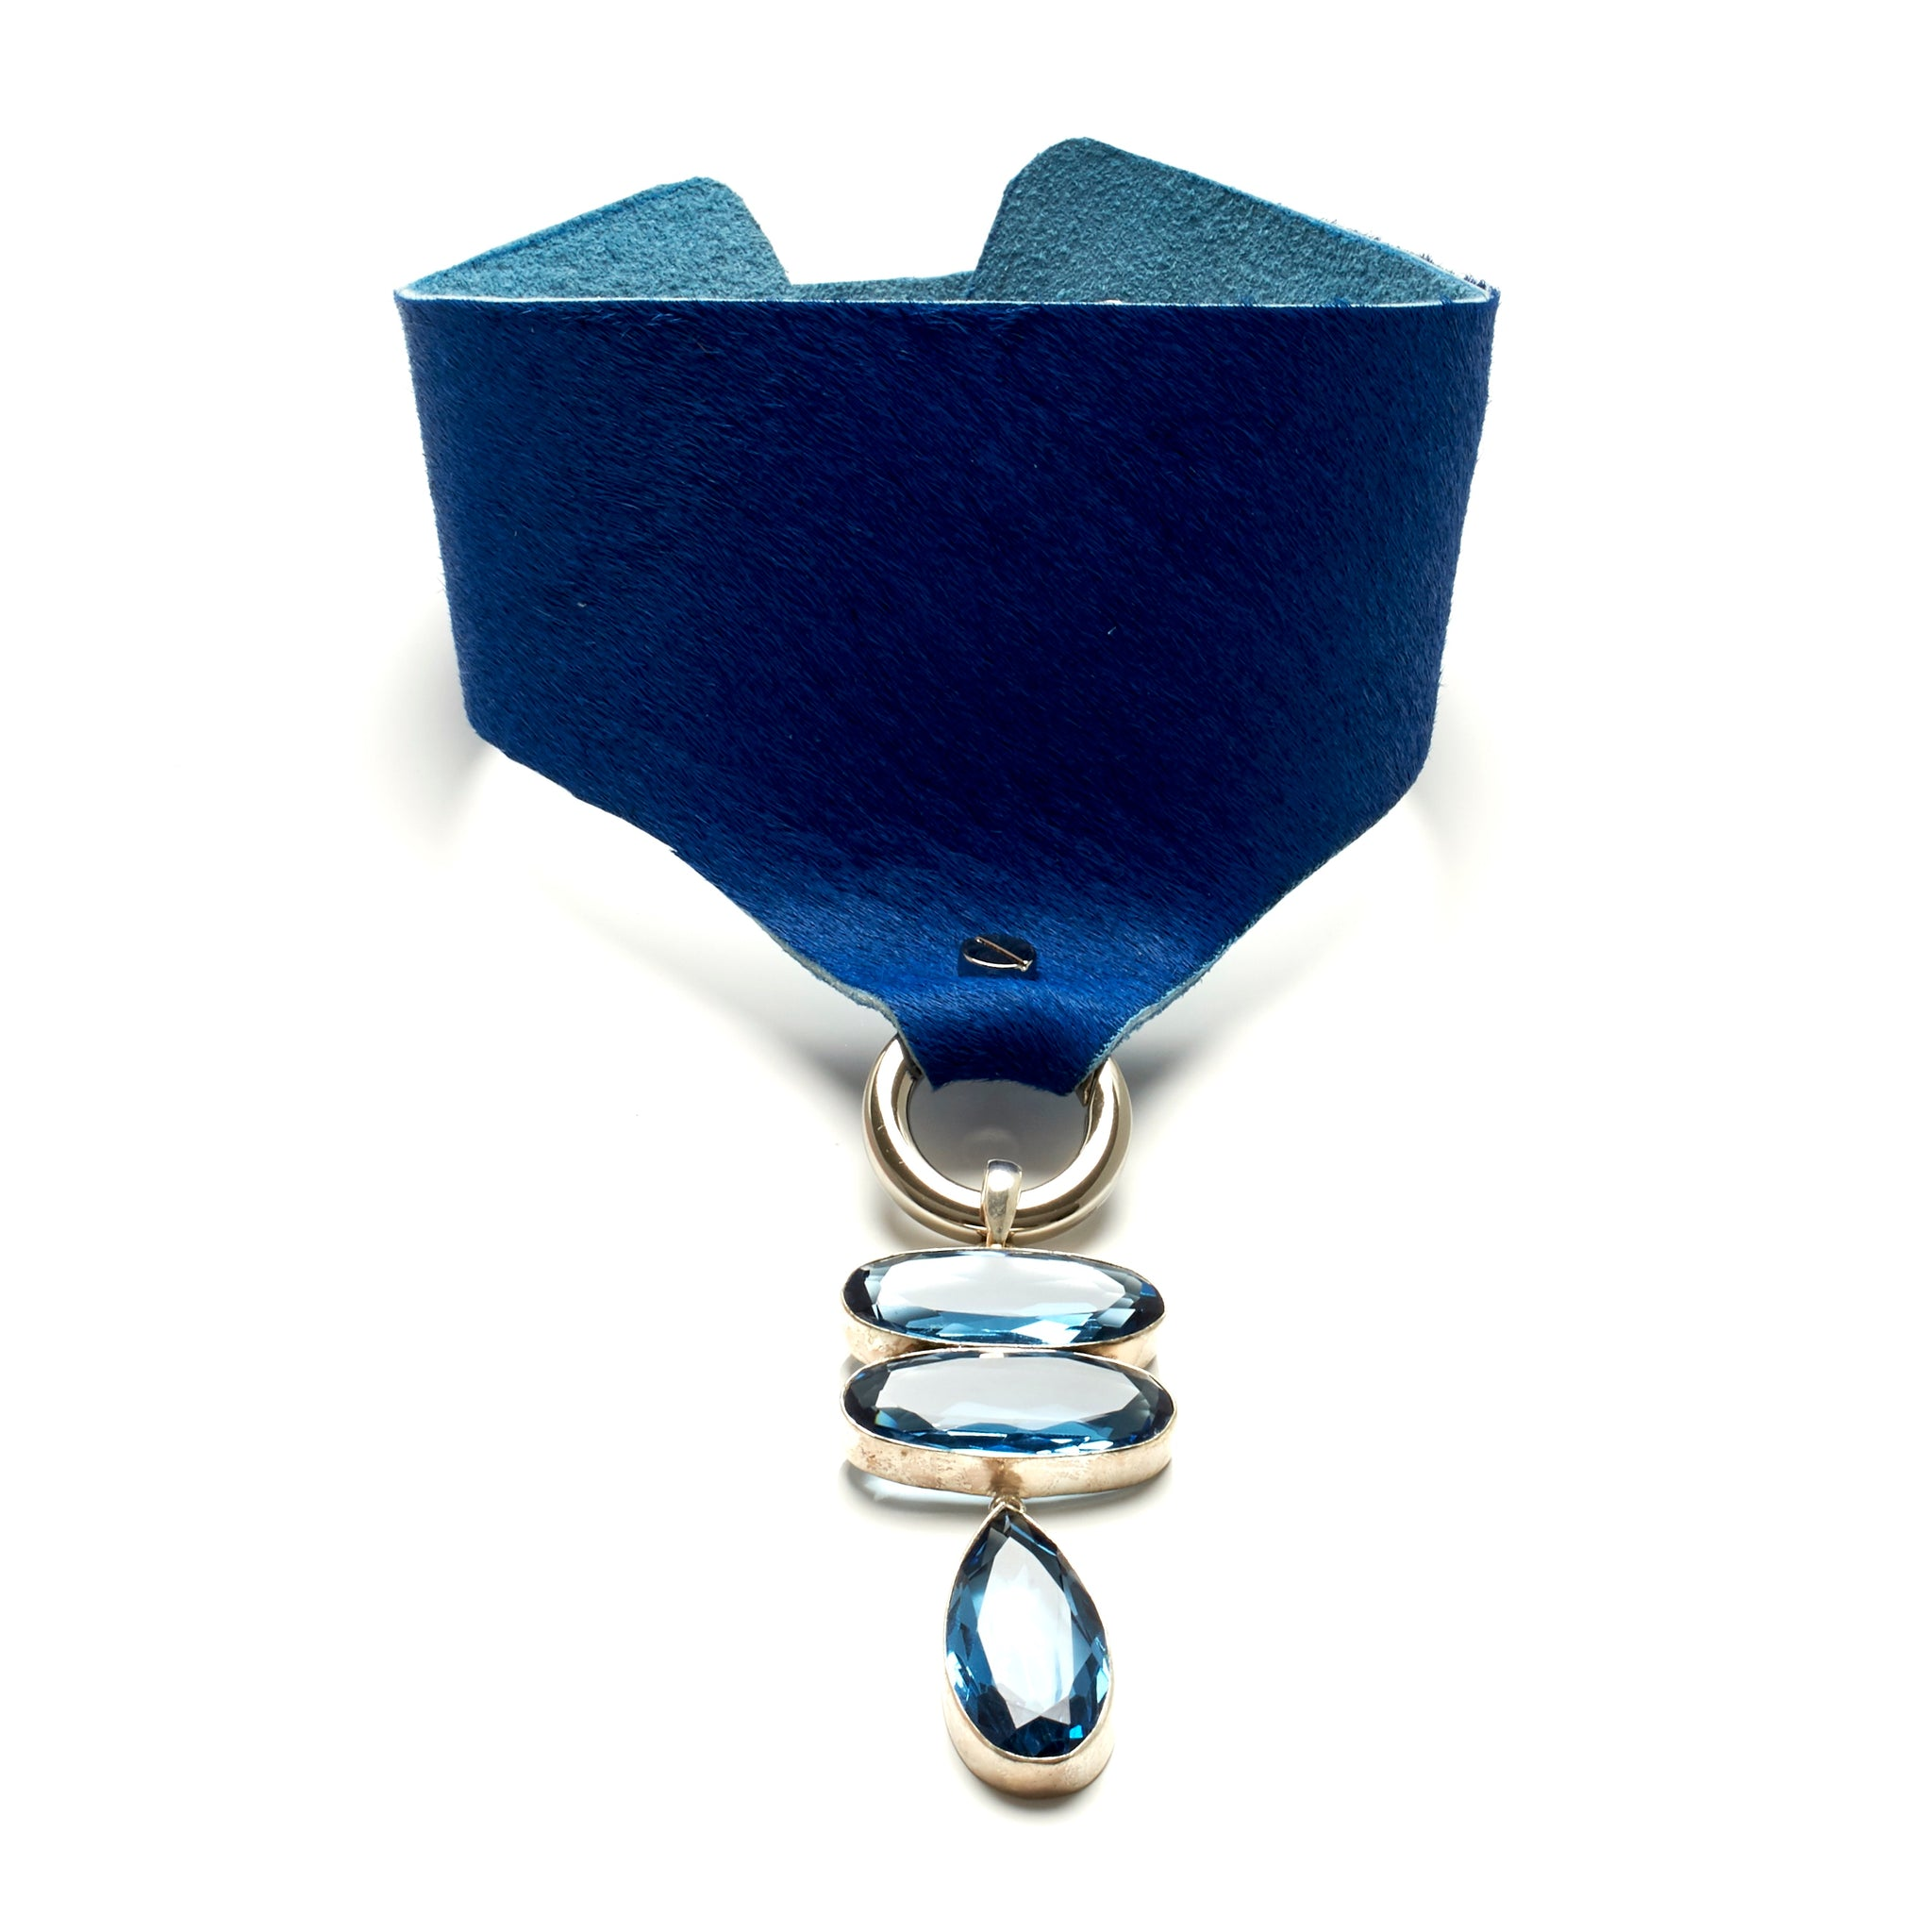 WIDE HAIR-ON COWHIDE CHOKER WITH LARGE SILVER PENDANT WITH THREE FACETED BLUE QUARTZ STONES. by nyet jewelry.